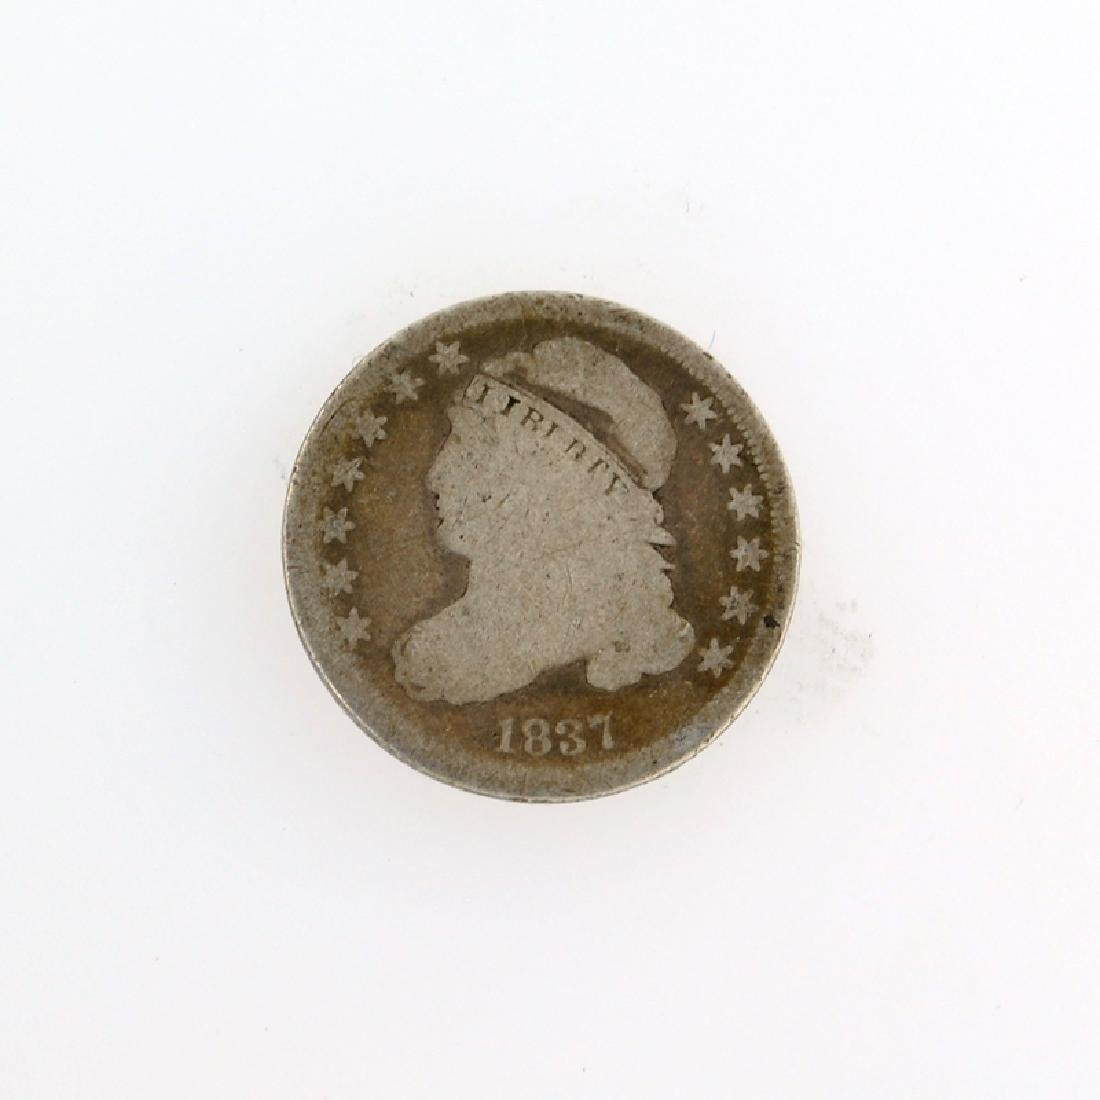 1837 Capped Bust Dime Coin